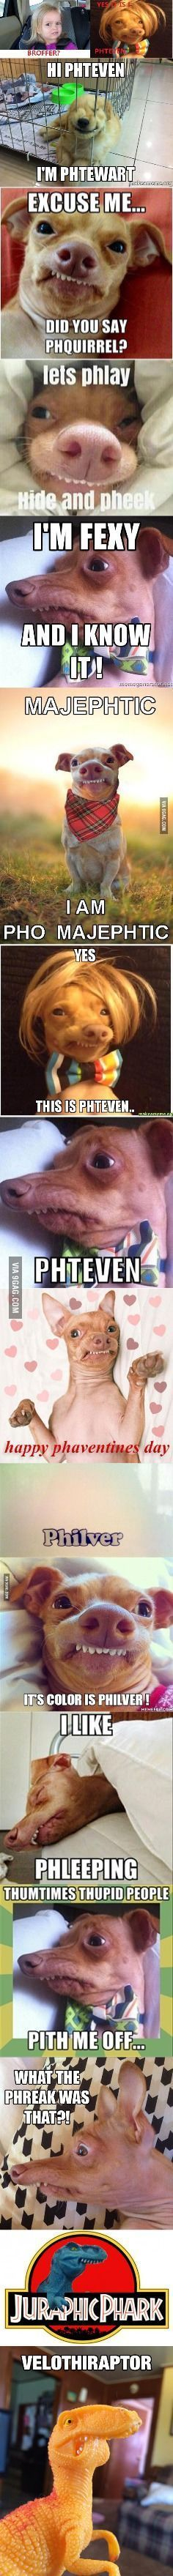 It's phteven...with a PH :B #funnydogvideos